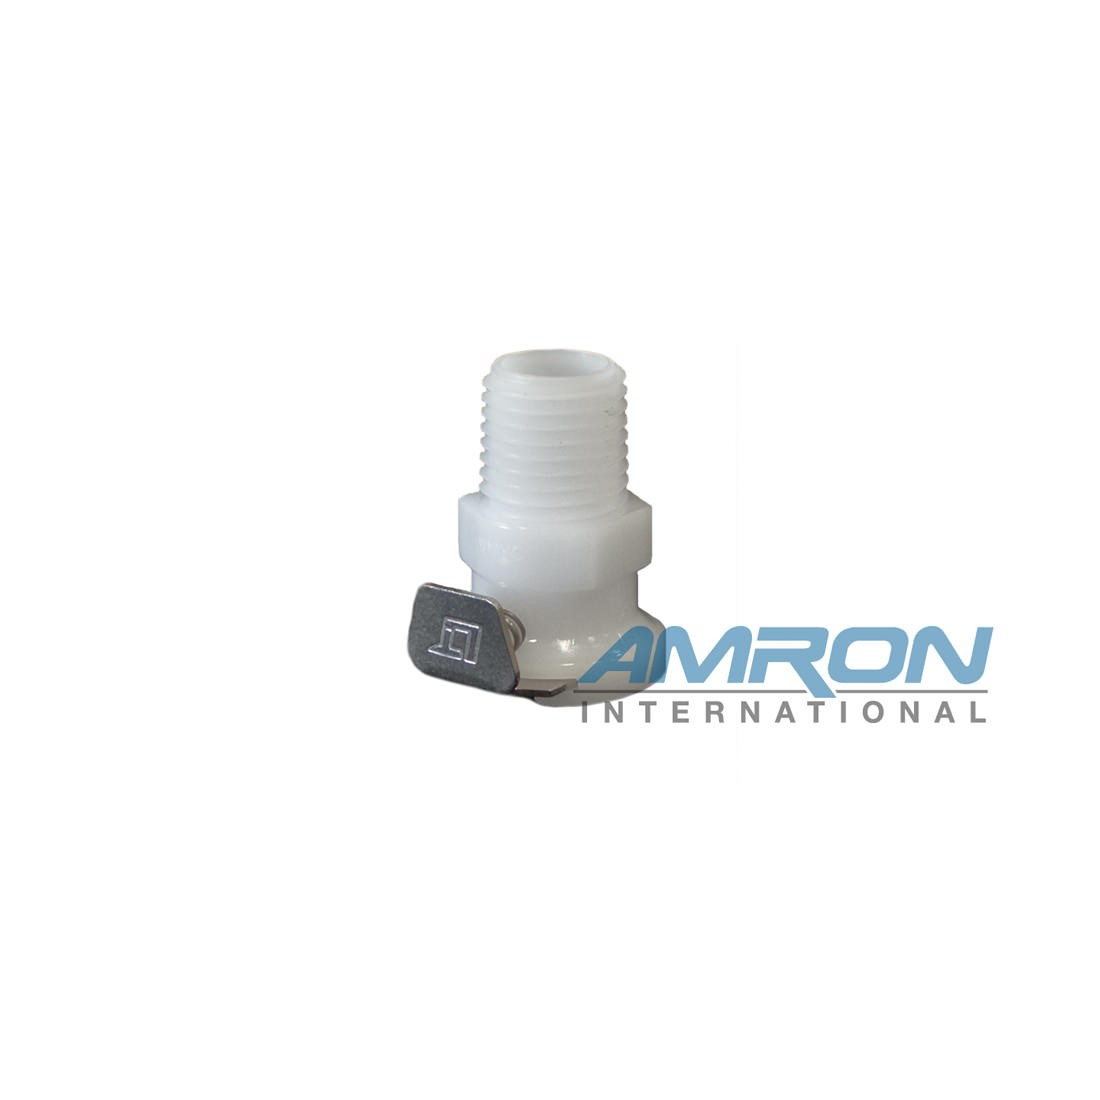 Amron International Quick Disconnect Detach Female 1/4 X 1/4IN MNPT 8895-40